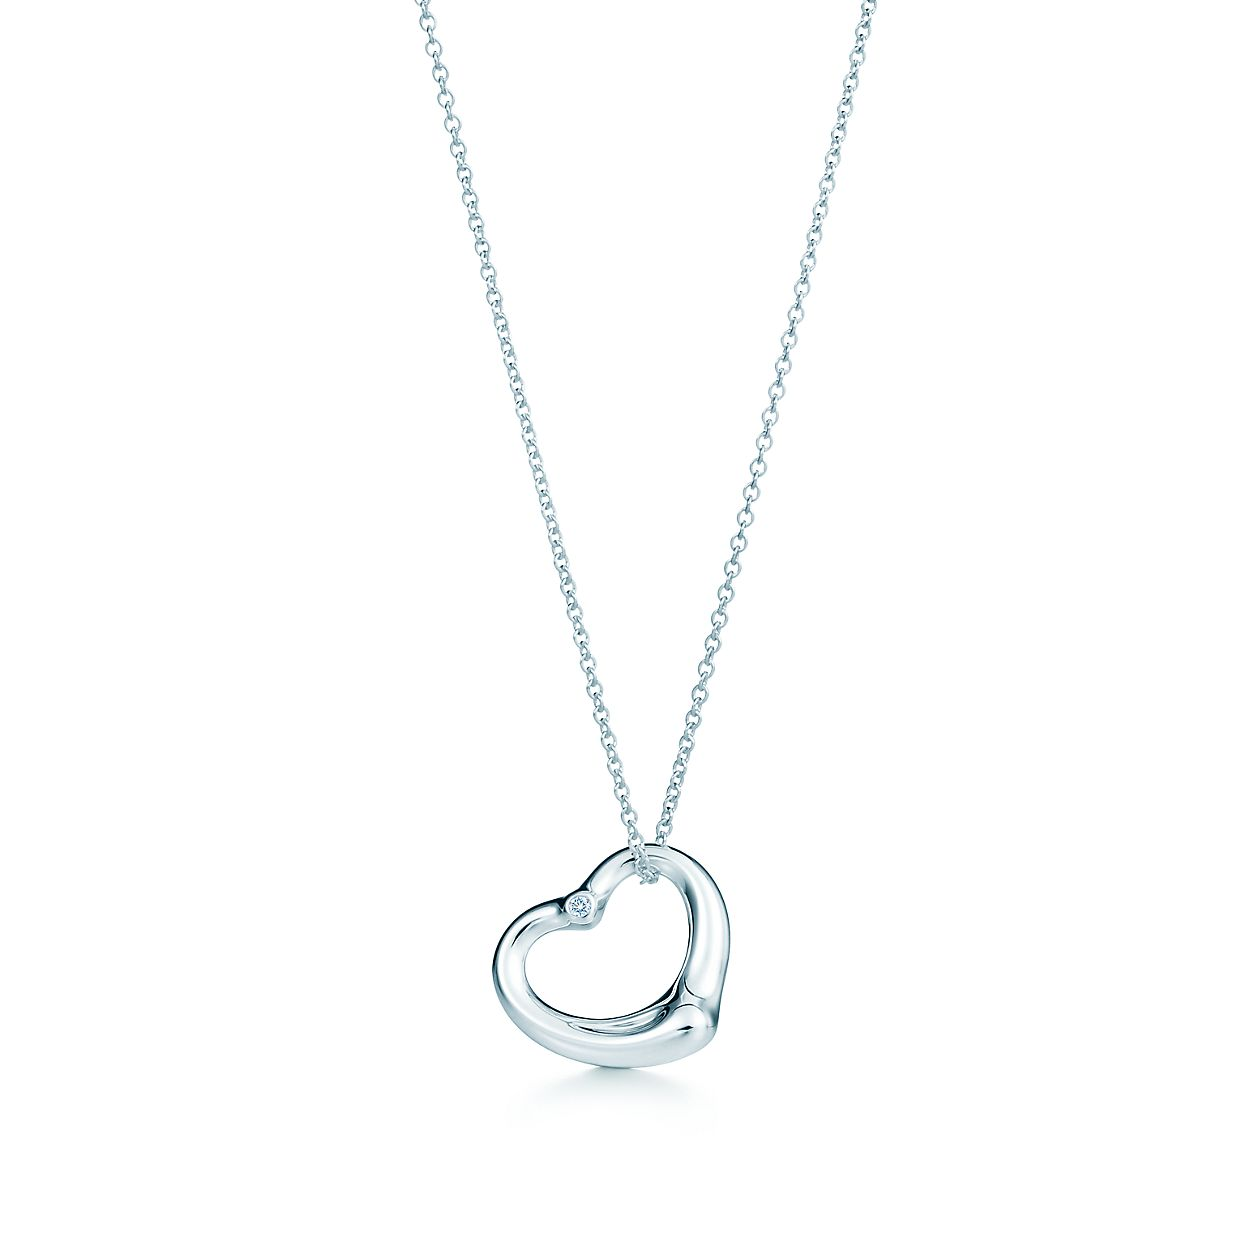 Elsa Peretti Open Heart pendant in sterling silver - Size 22 mm Tiffany & Co. k2qNcB